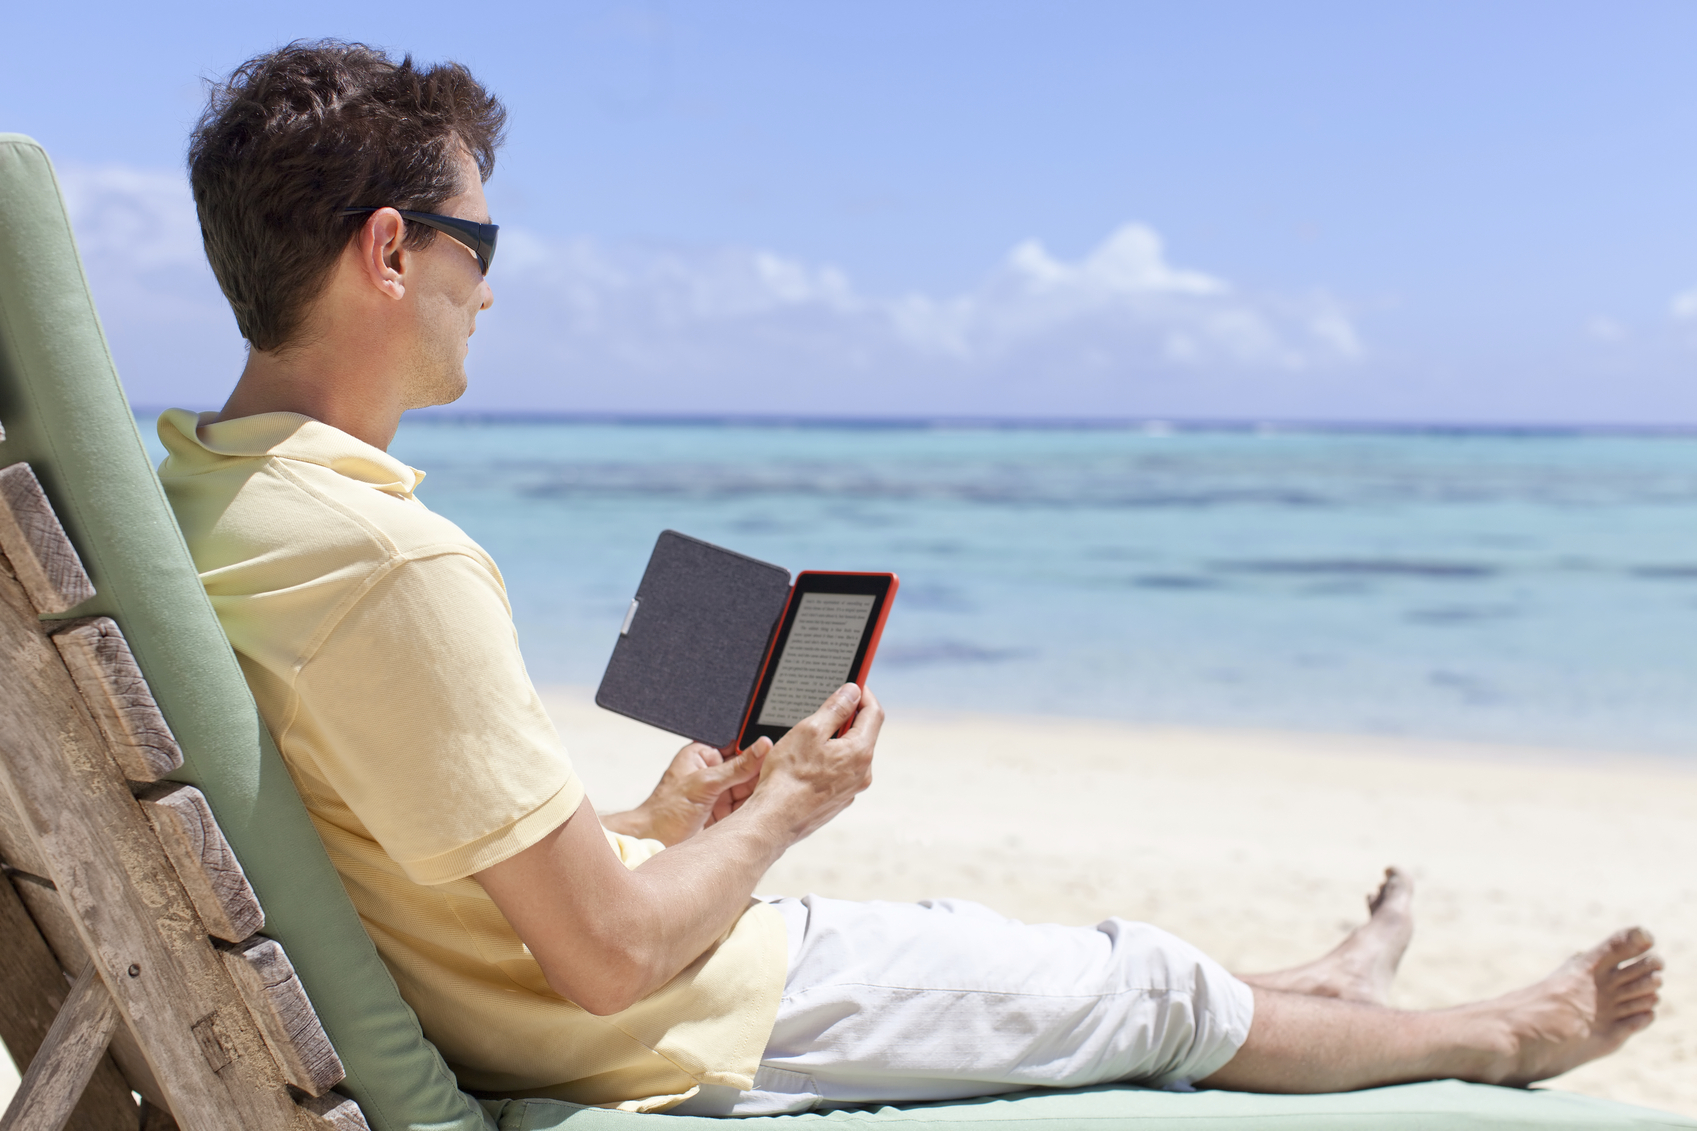 handsome man at the beach reading his electronic reader